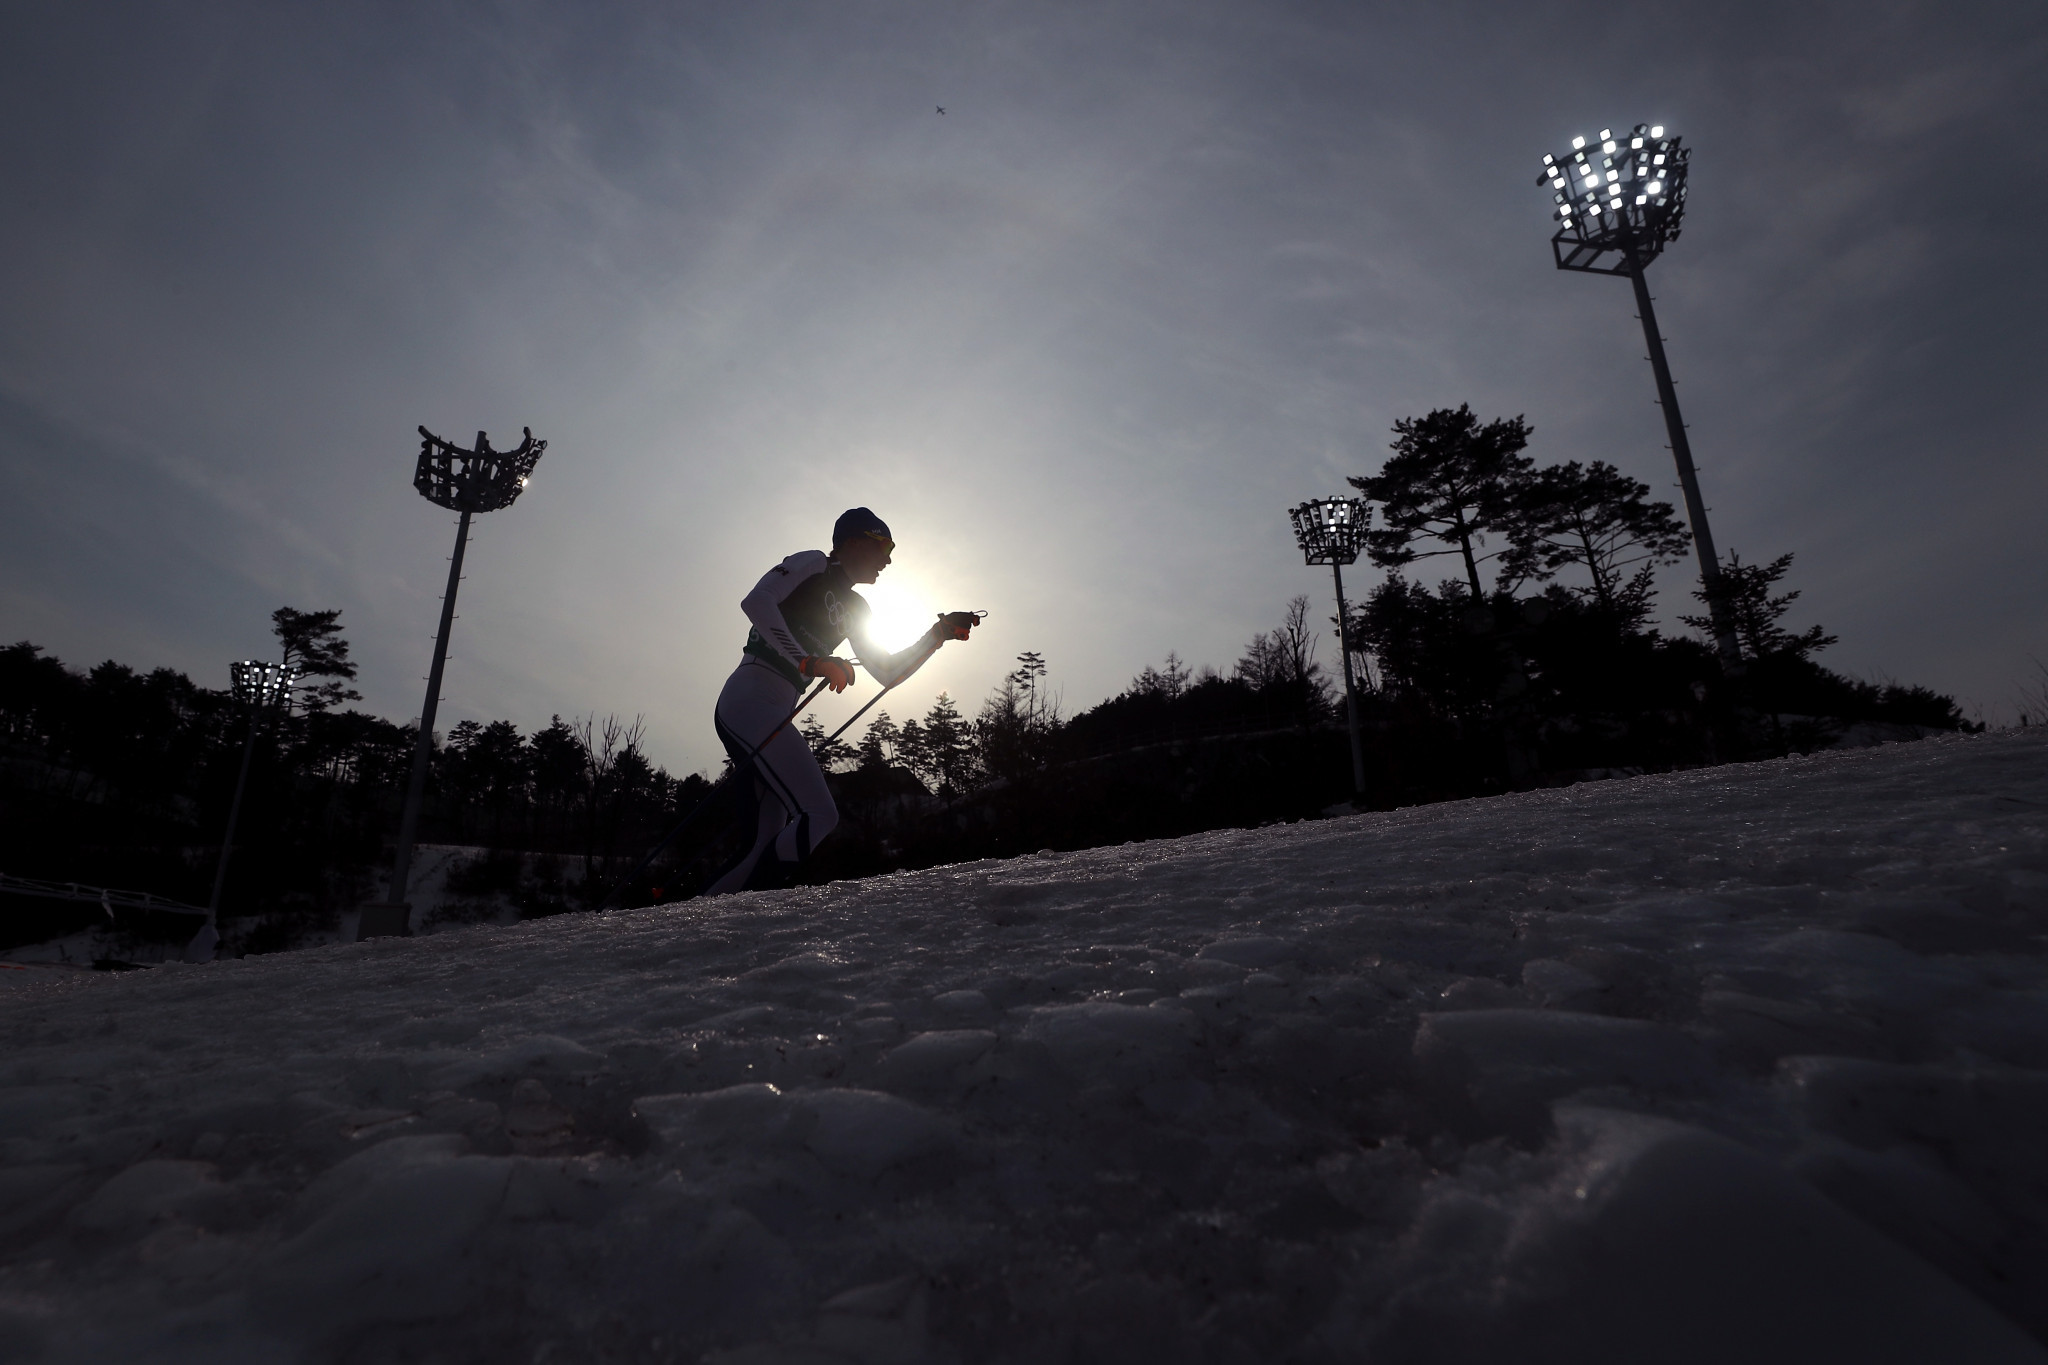 Russian cross-country skier Gaziev given two-year doping ban